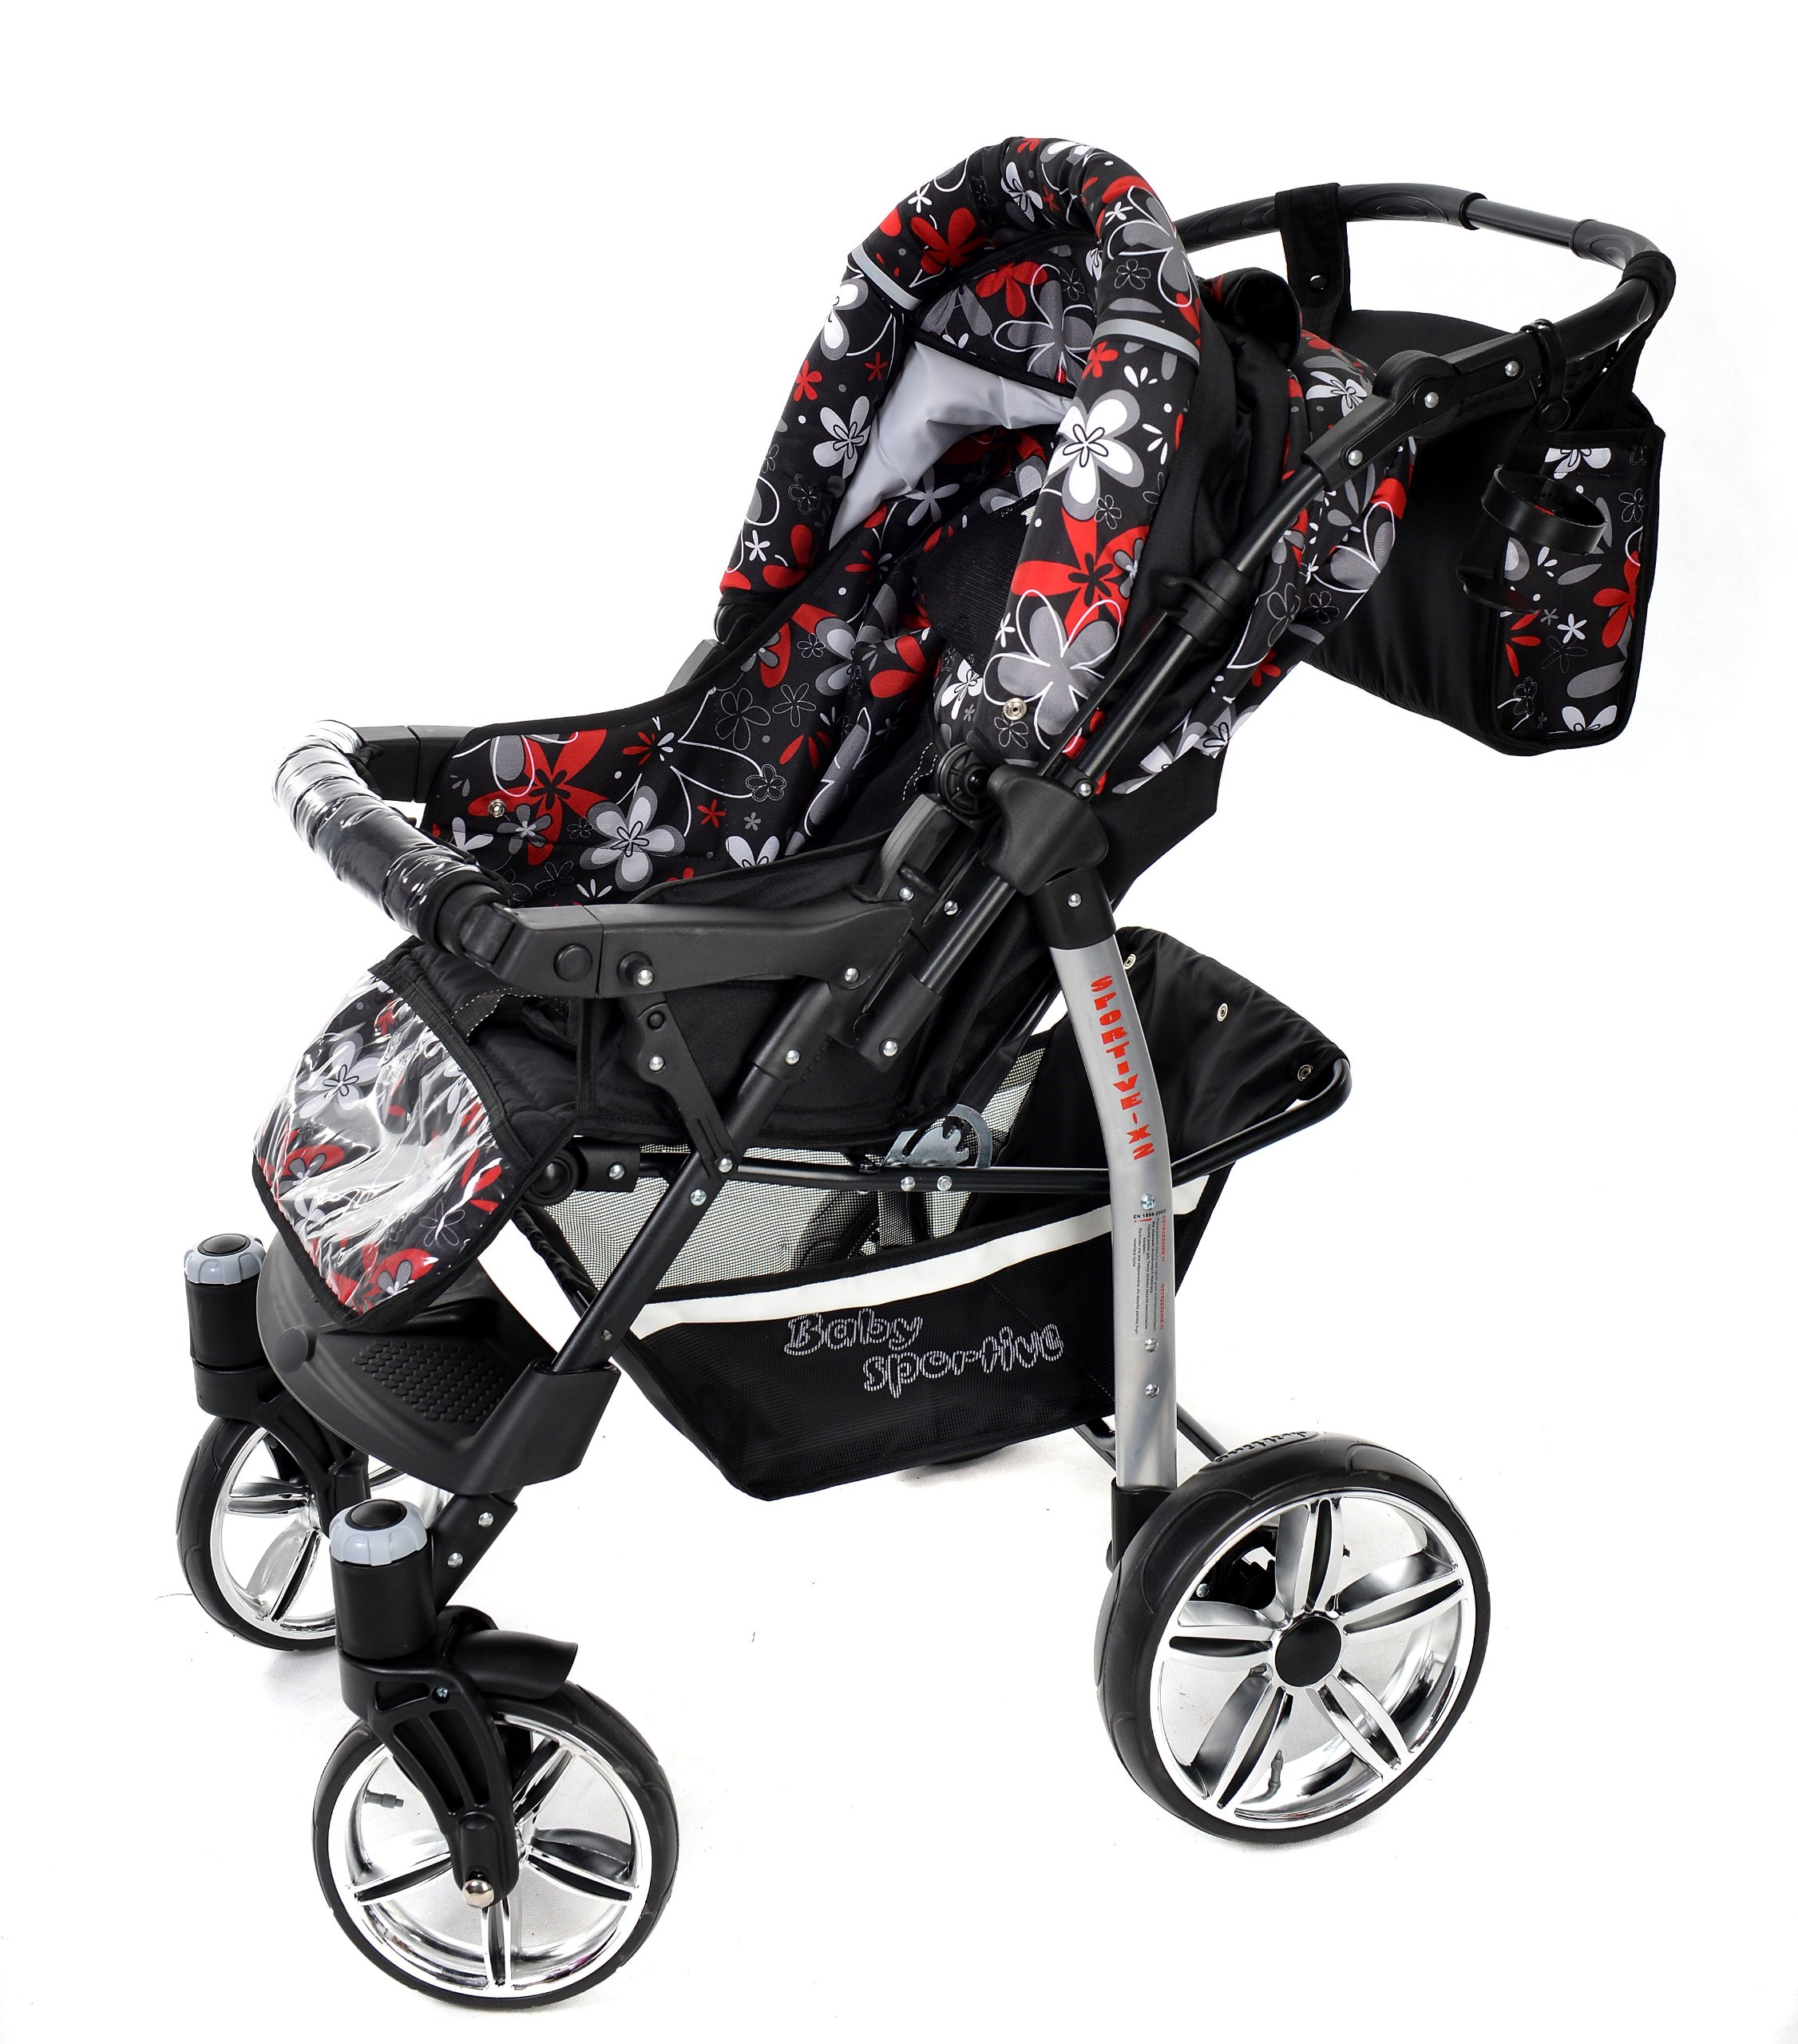 Sportive X2, 3-in-1 Travel System incl. Baby Pram with Swivel Wheels, Car Seat, Pushchair & Accessories (3-in-1 Travel System, Black & Small Flowers) Baby Sportive 3 in 1 Travel System All in One Set - Pram, Car Carrier Seat and Sport Buggy + Accessories: carrier bag, rain protection, mosquito net, changing mat, removable bottle holder and removable tray for your child's bits and pieces Suitable from birth, Easy Quick Folding System; Large storage basket; Turnable handle bar that allows to face or rear the drive direction; Quick release rear wheels for easy cleaning after muddy walks Front lockable 360o swivel wheels for manoeuvrability , Small sized when folded, fits into many small car trunks, Carry-cot with a removable hood, Reflective elements for better visibility 5